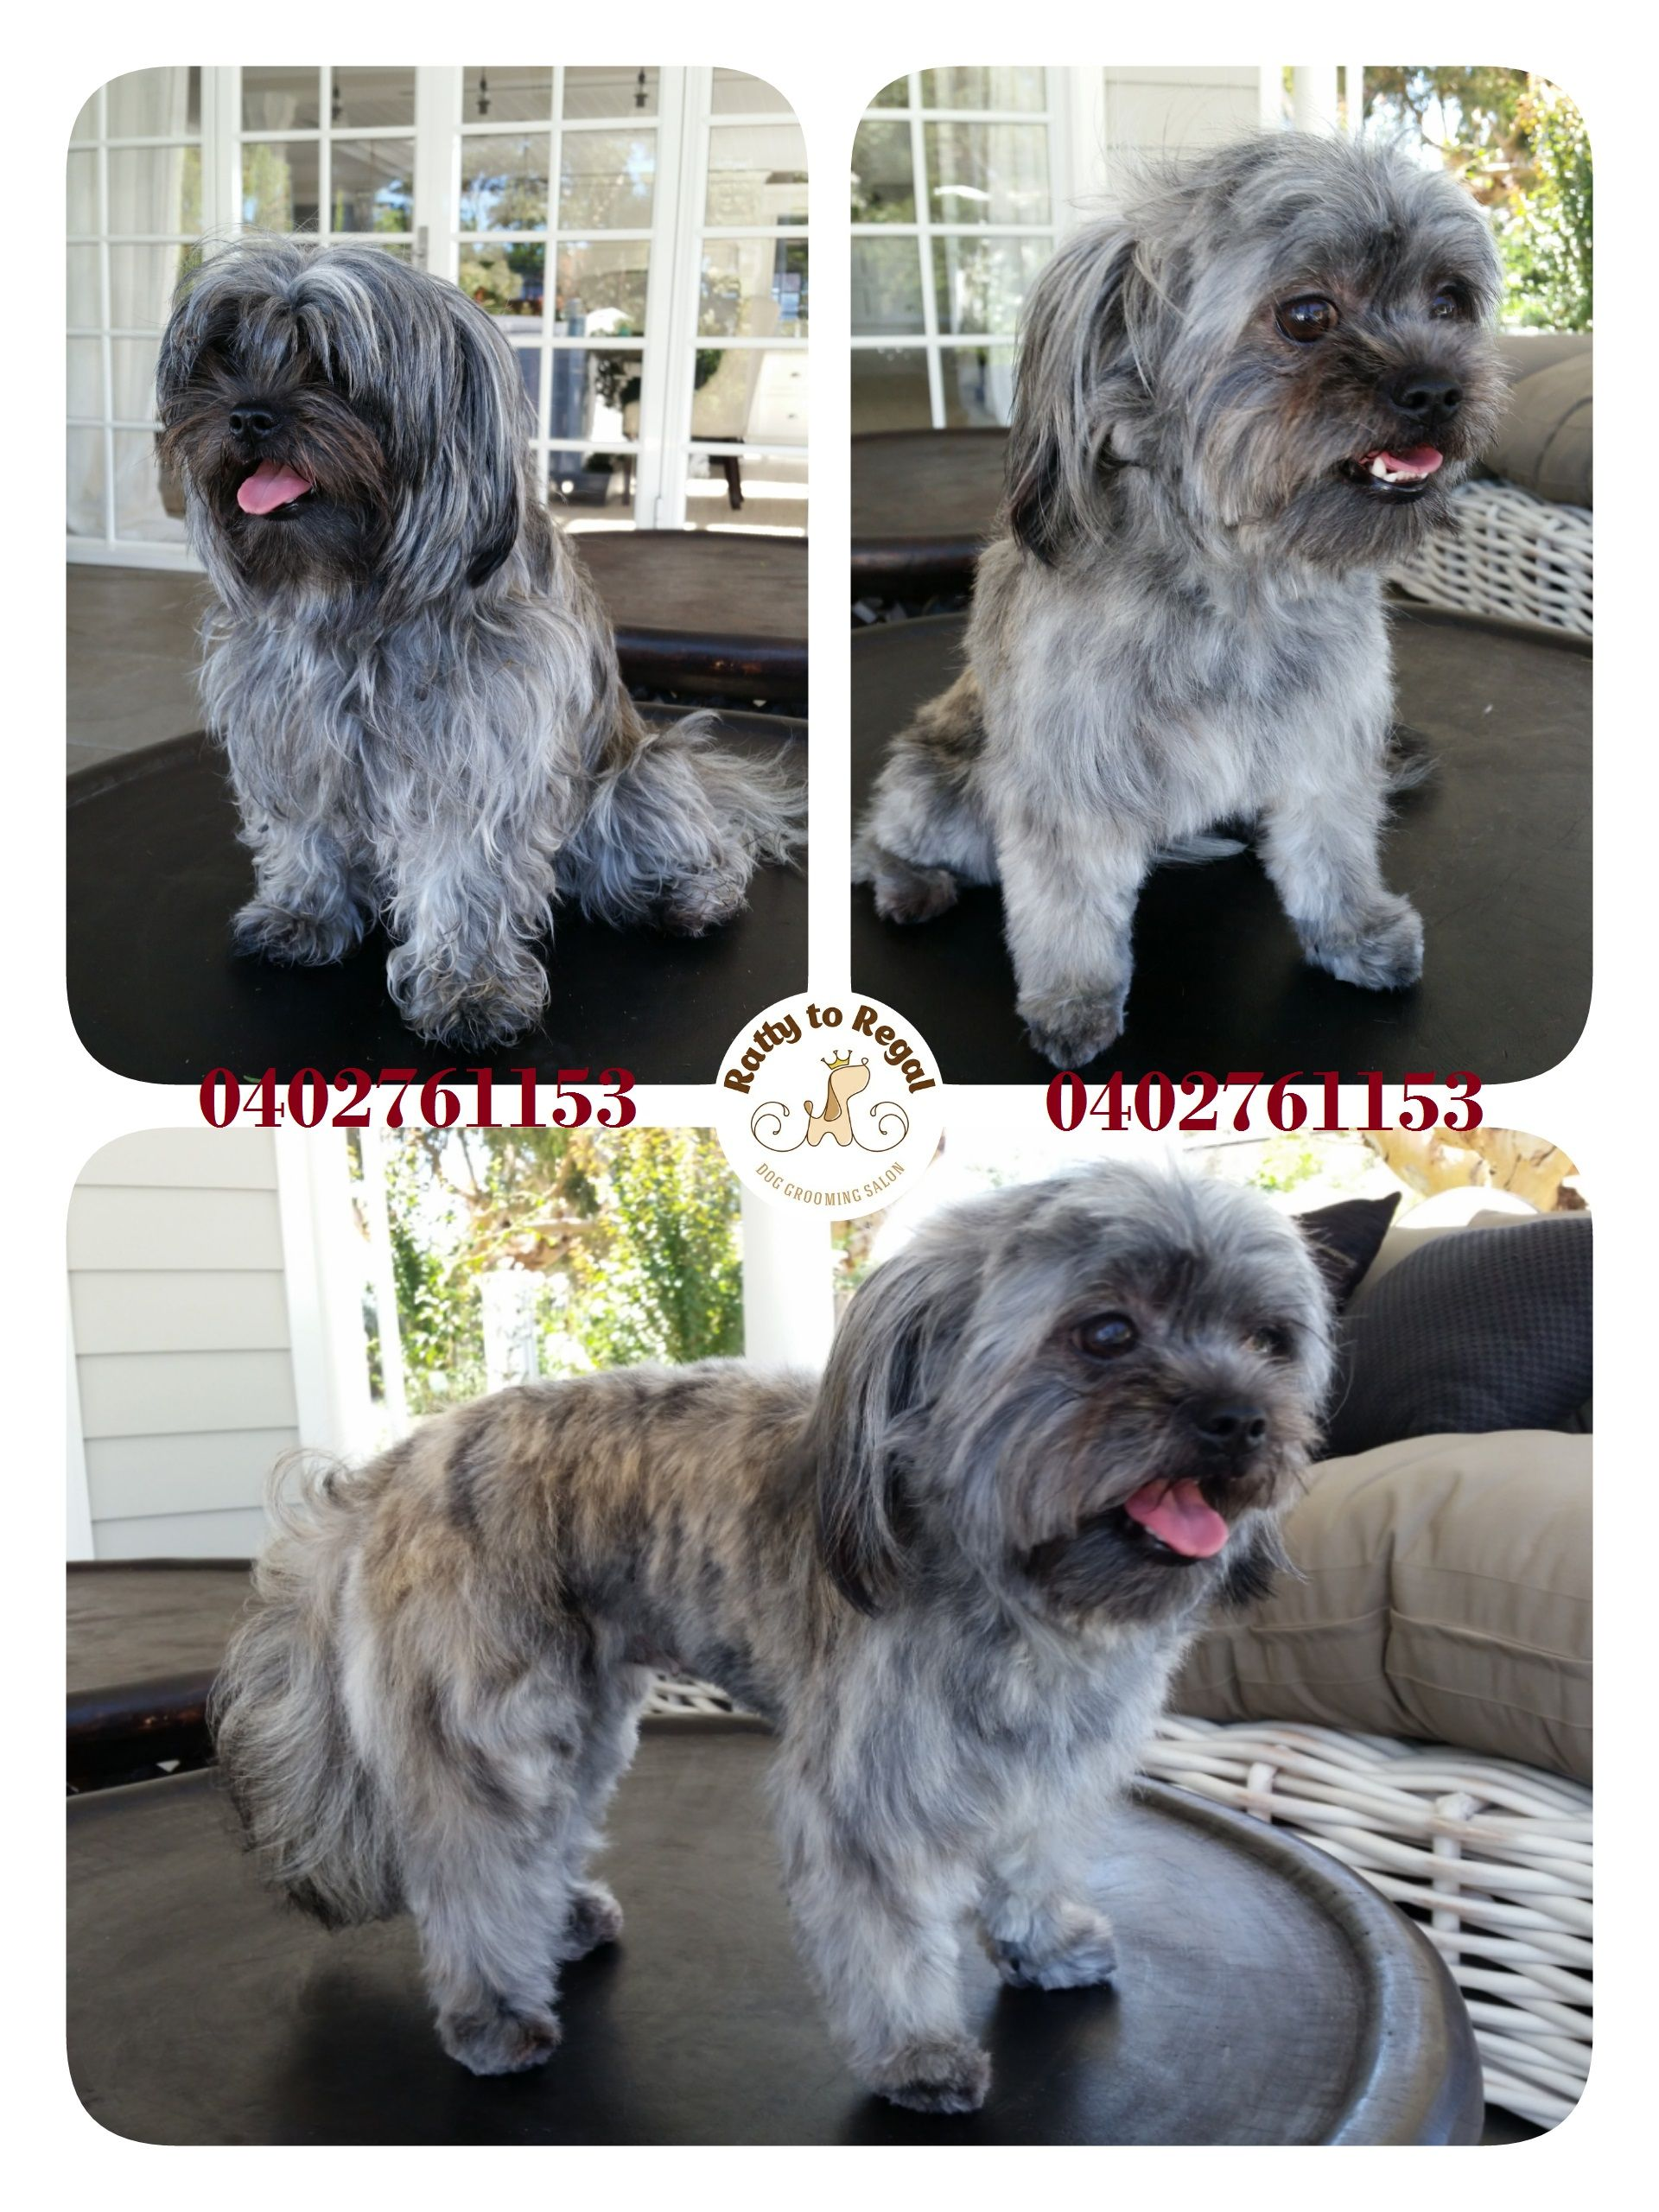 Boo Boo, Shih Tzu x Maltese, 1 year young. Full Groom Website: https://rattytoregal.wixsite.com/rattytoregal Facebook: https://www.facebook.com/rattytoregal/